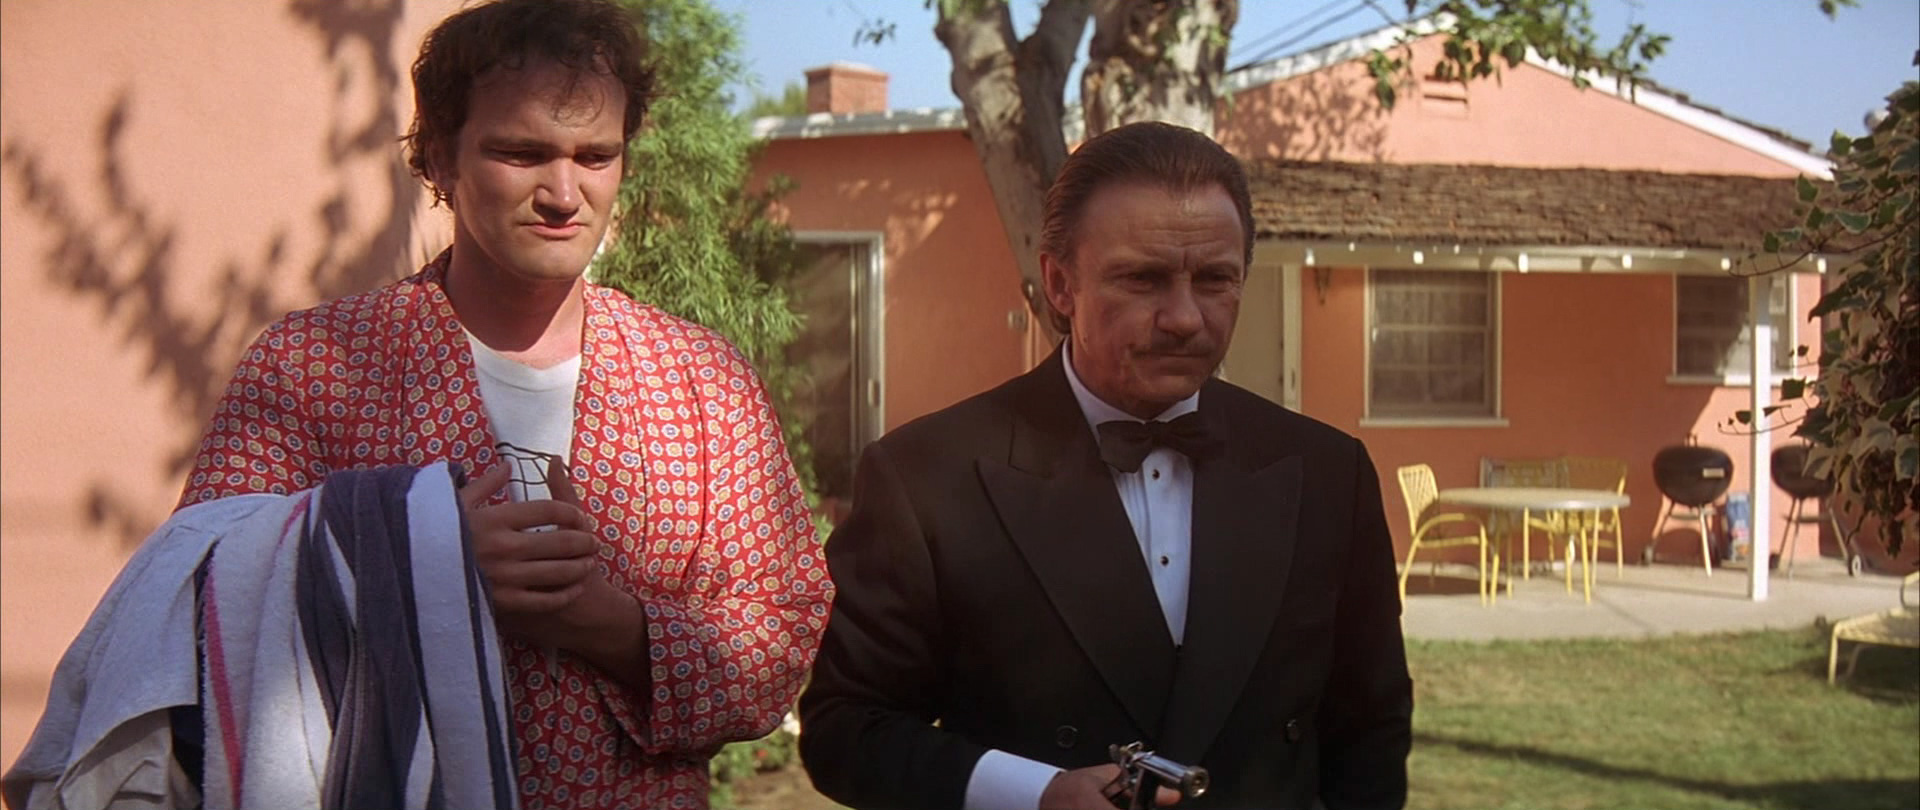 an analysis of the controversial film pulp fiction directed by quentin tarantino Films directed by quentin tarantino, by order: reservoir dogs (1992) pulp fiction (1994) jackie brown (1997) kill bill vol 1 (2003) kill bill vol 2 (2004.